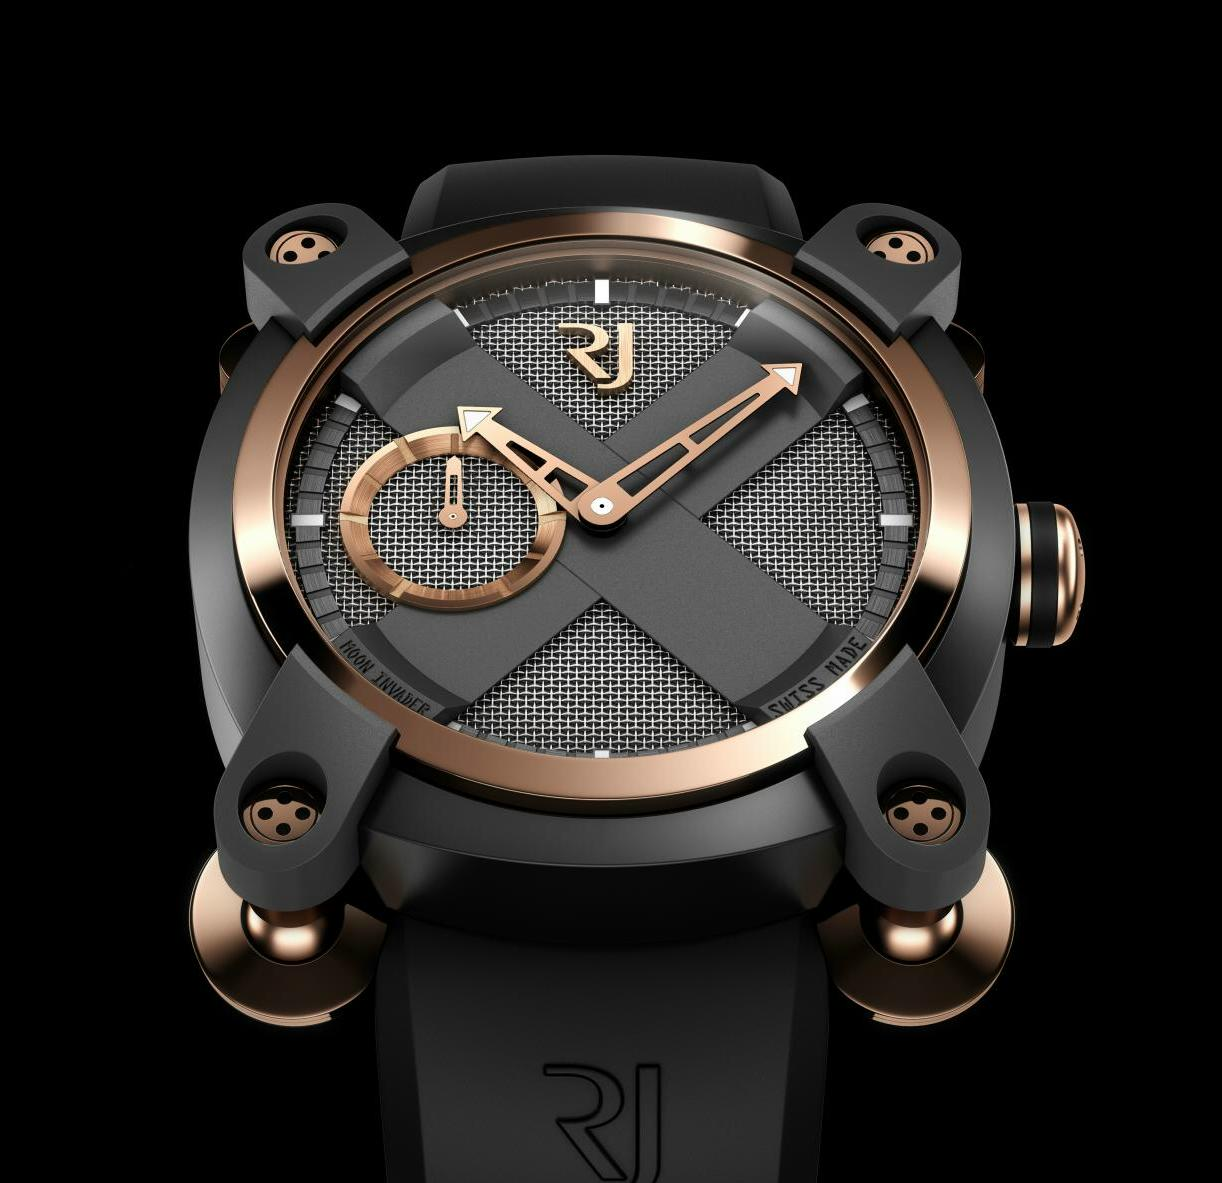 Romain Jerome Moon Invader Eminence Grise Automatic